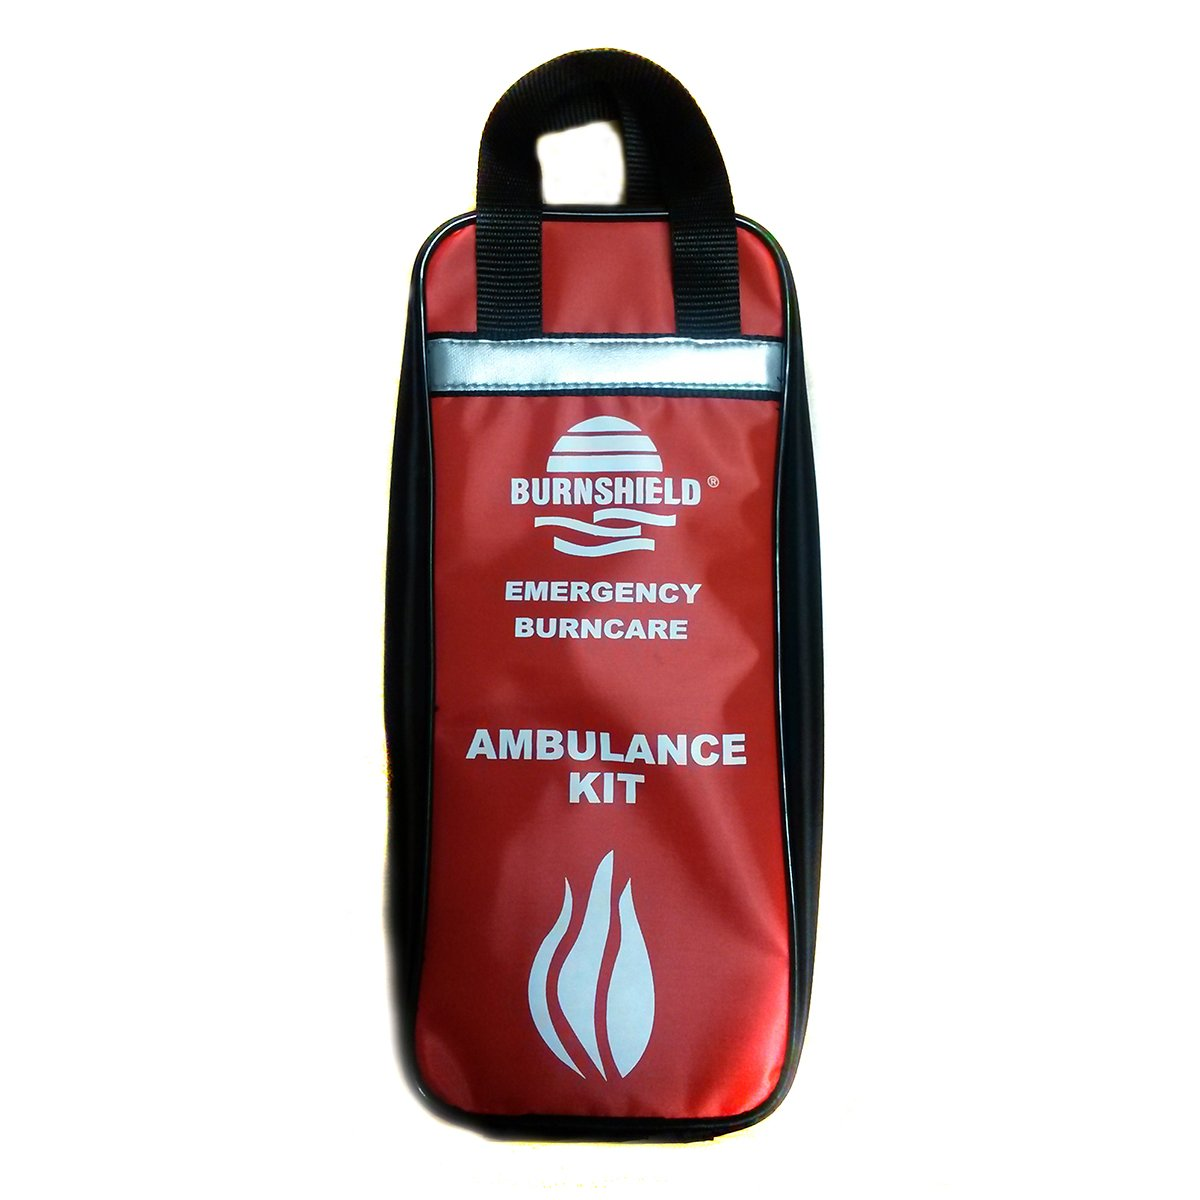 Burnshield® Emergency Ambulance Burn Kit